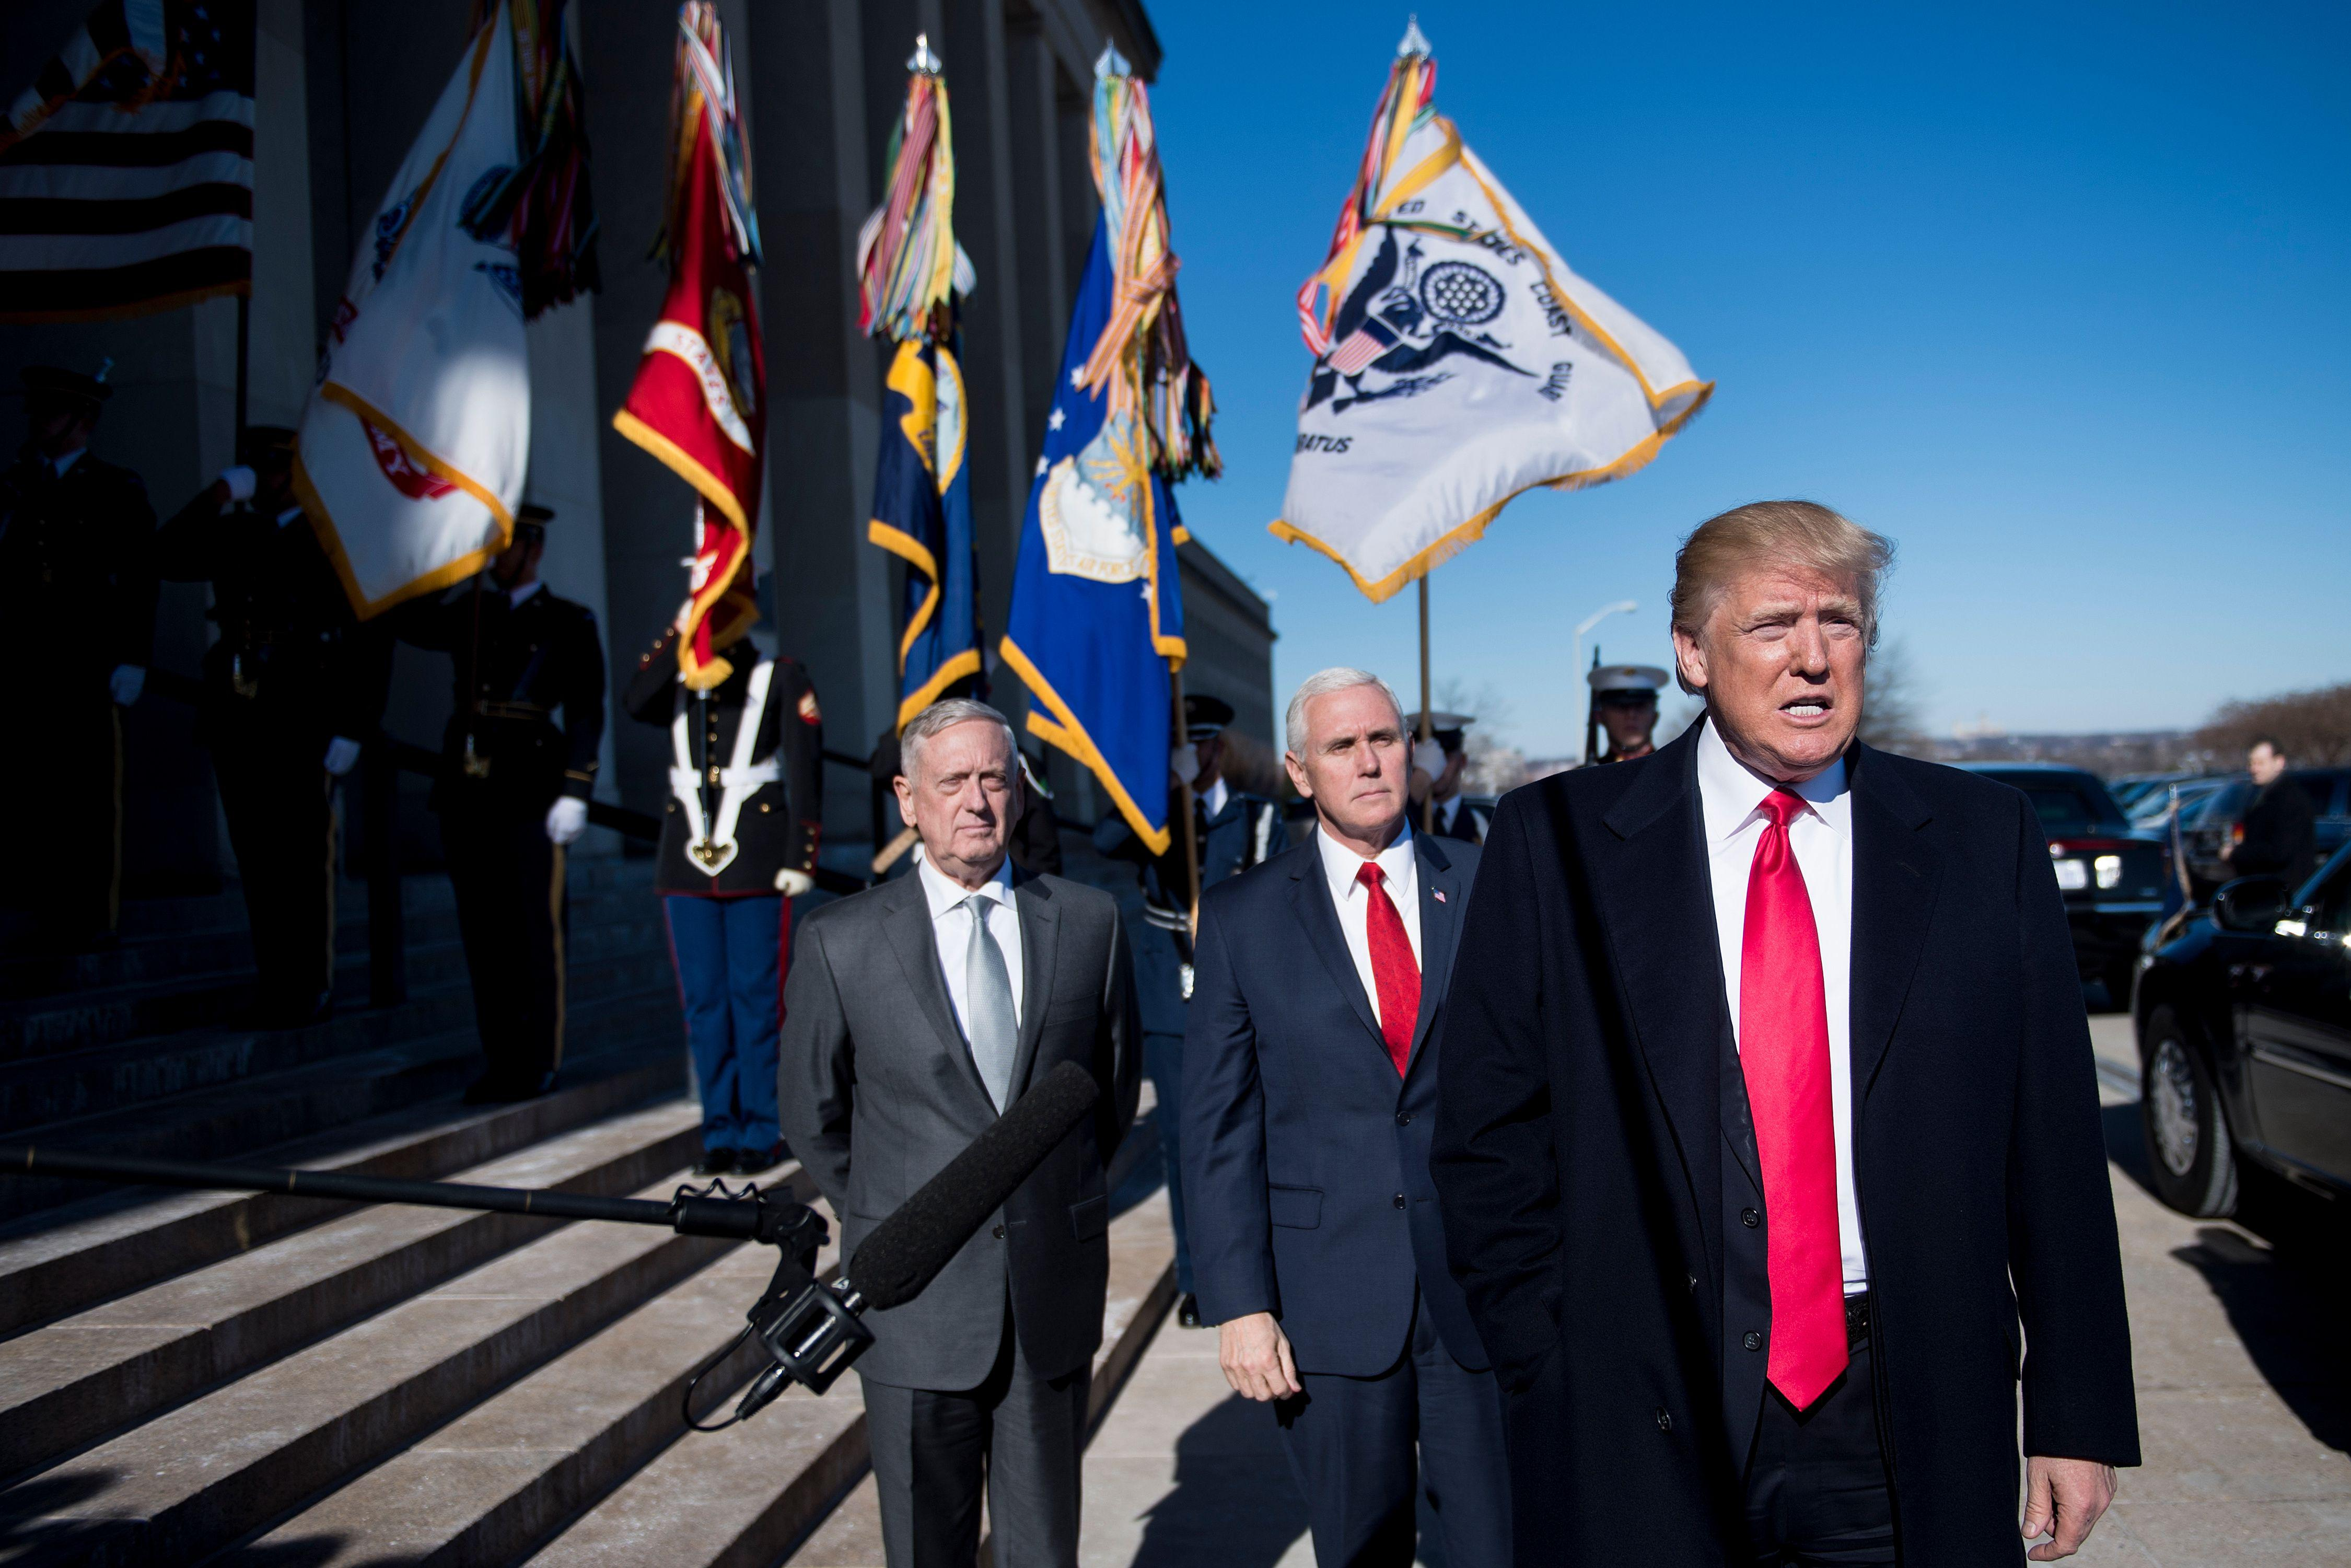 Secretary of Defense James Mattis, left, and Vice President Mike Pence, center, listen while President Donald Trump speaks before a meeting in the Pentagon.